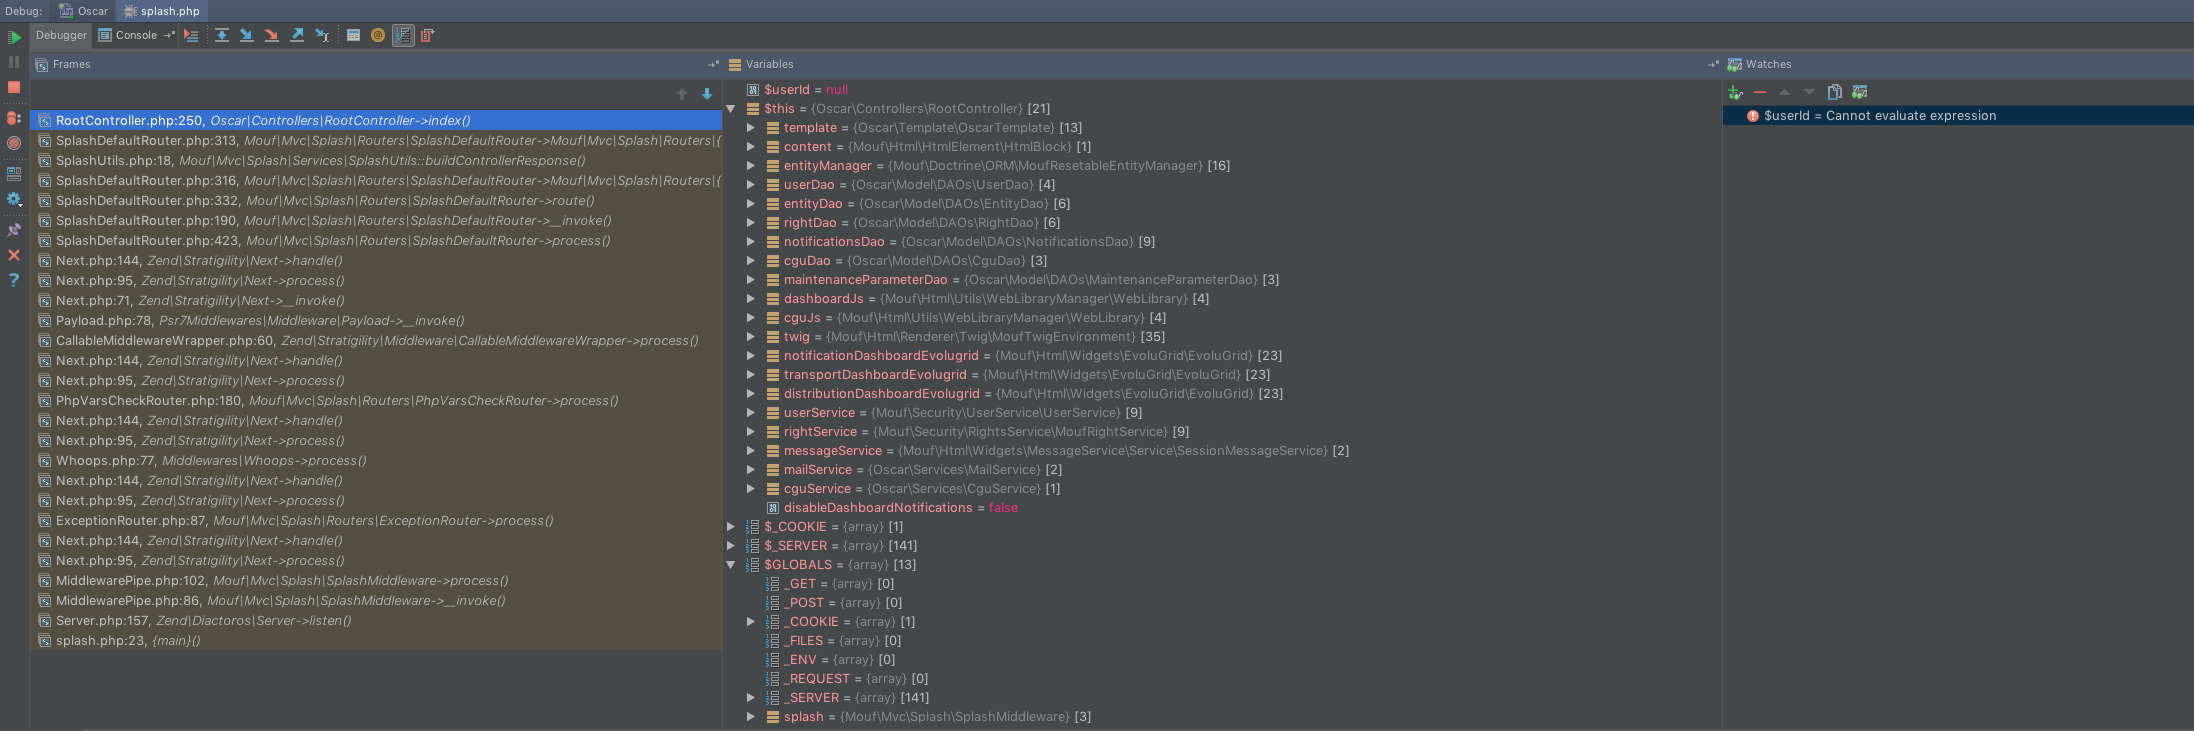 Debugging PHP (web and cli) with Xdebug using Docker and PHPStorm